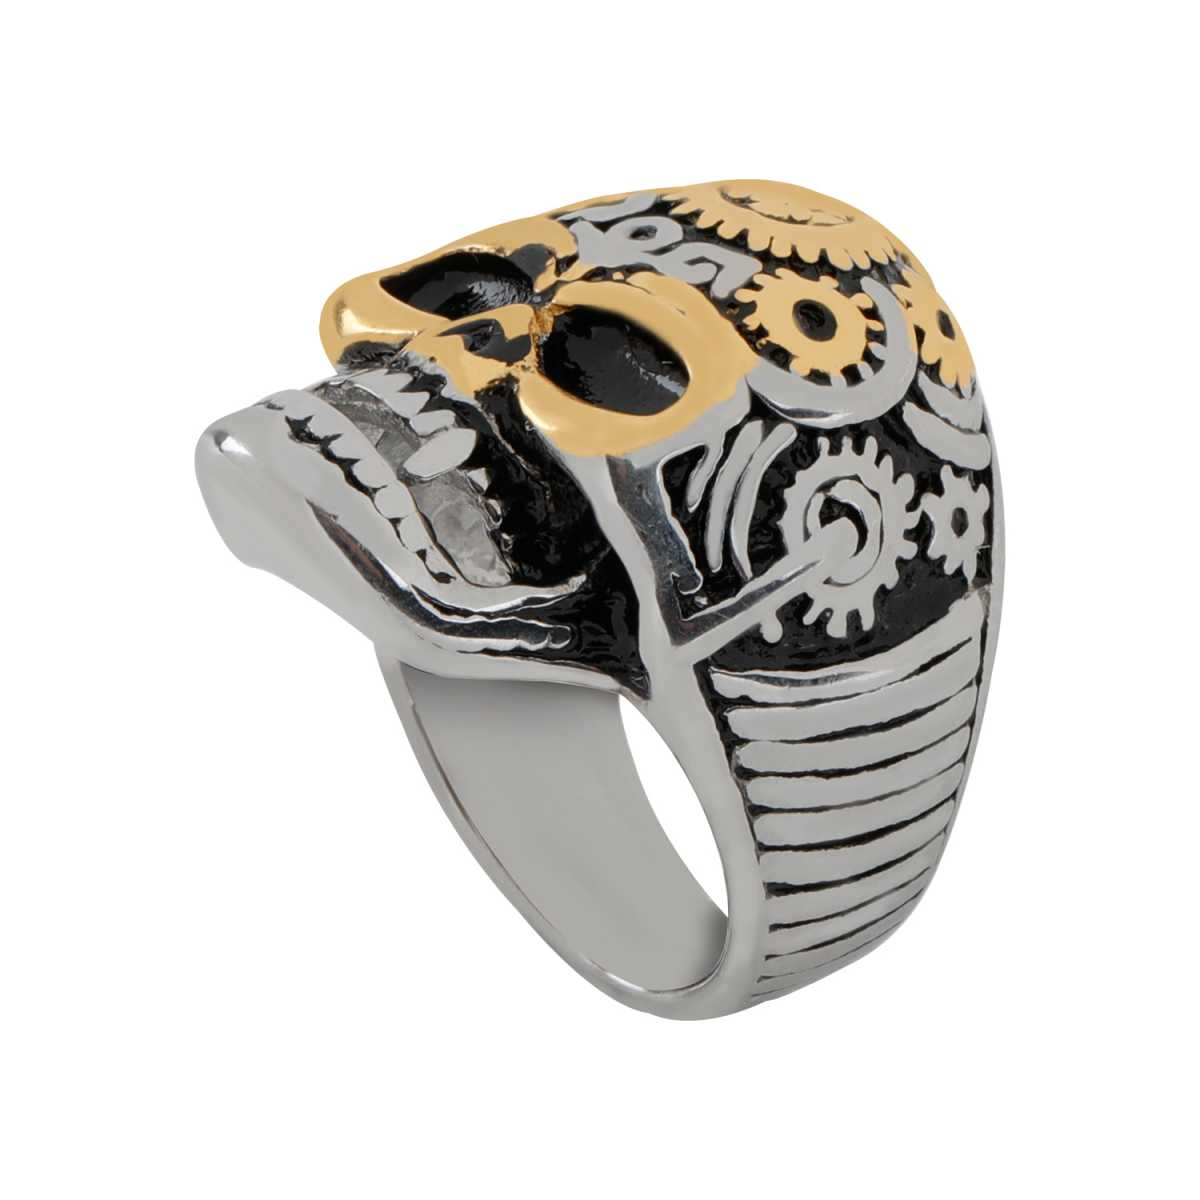 Silver Shine Stainless Steel Skull from Batman Bikers Ring for Boys and Men